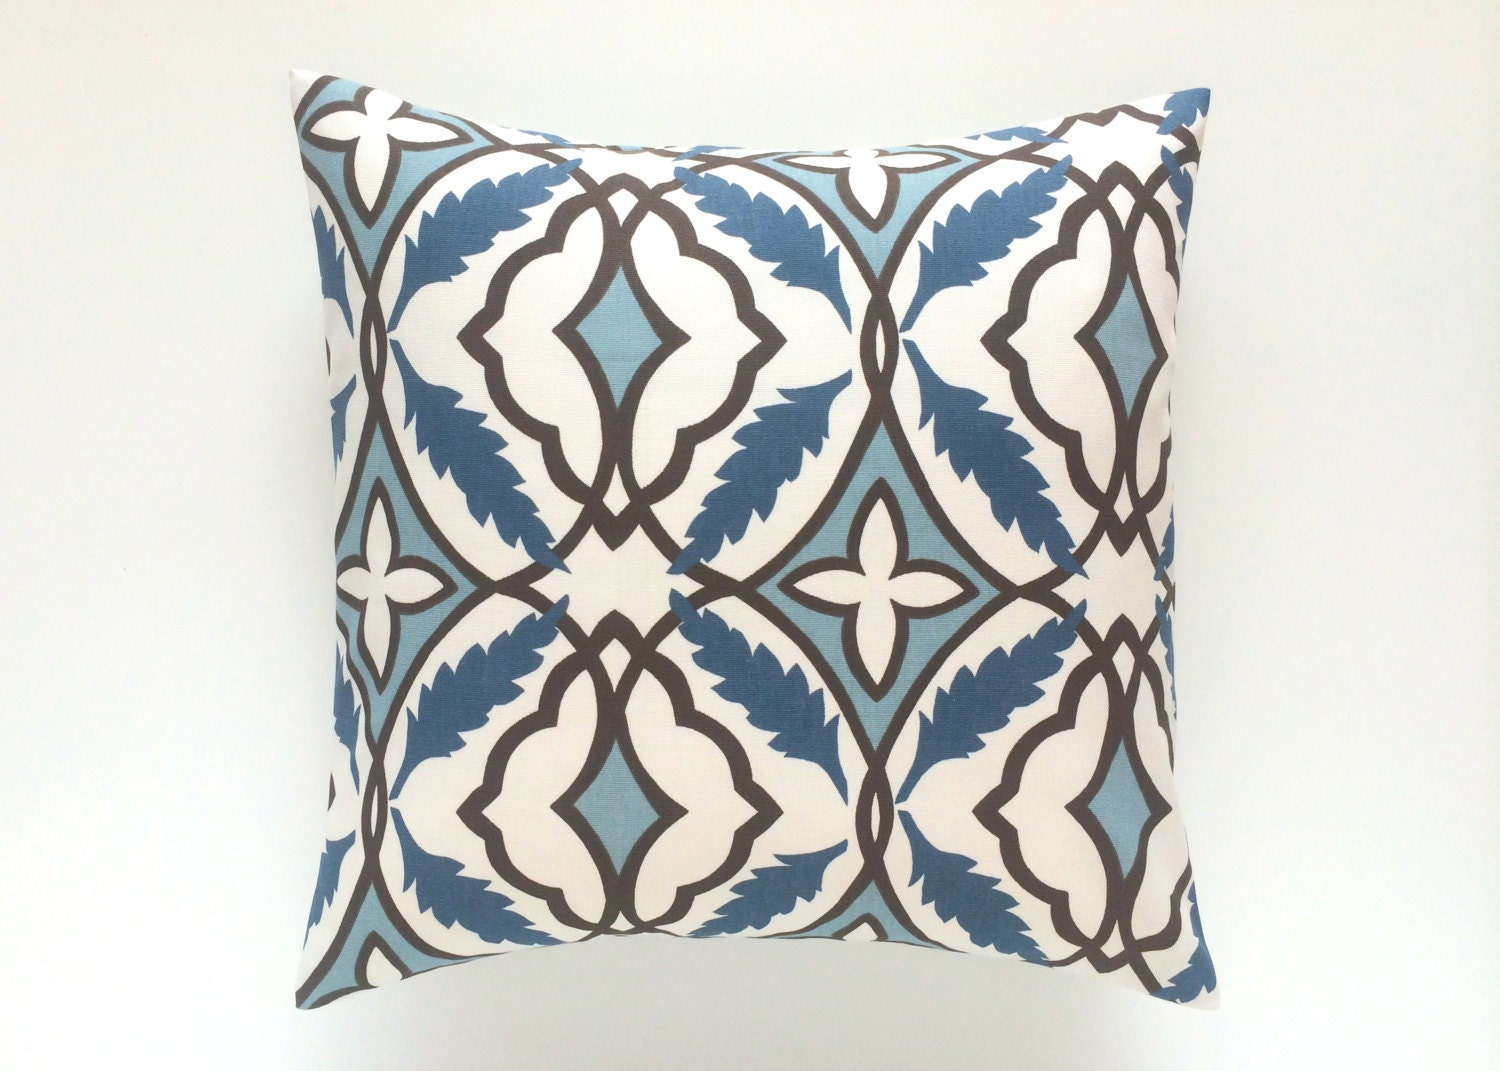 Decorative Throw Pillows Clearance : 50% OFF CLEARANCE Decorative Throw Pillow Cover. 18x18 Inches